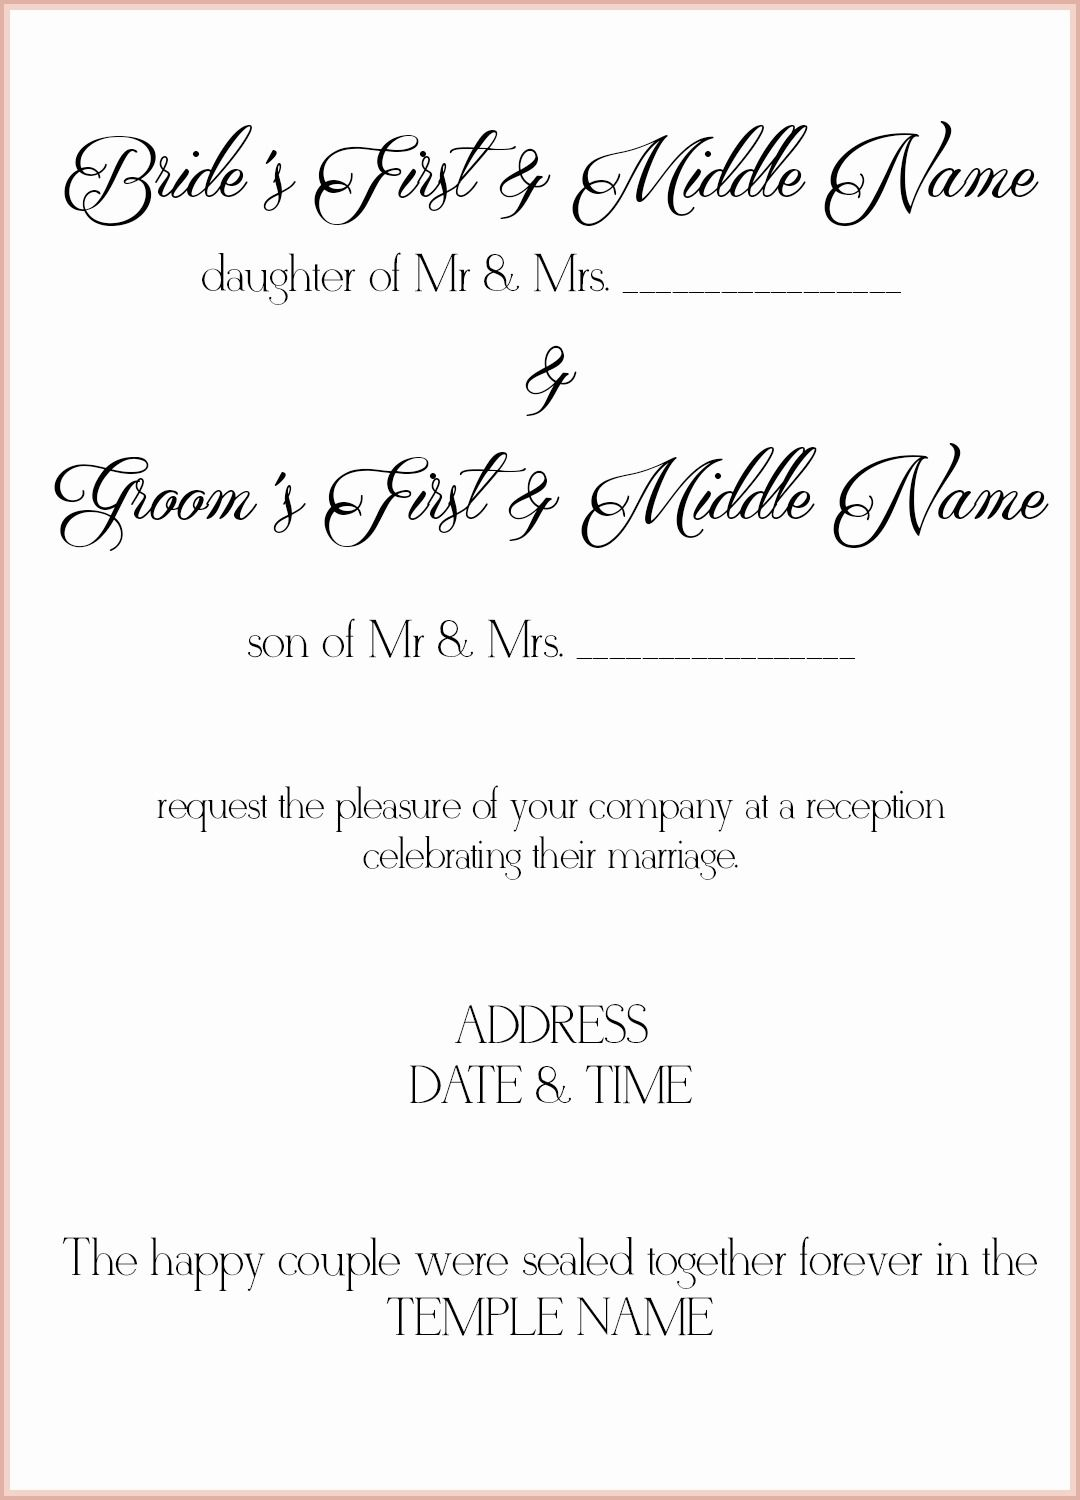 Exquisite Wedding Invitation Wording Samples You Ll Want To Copy Immediately